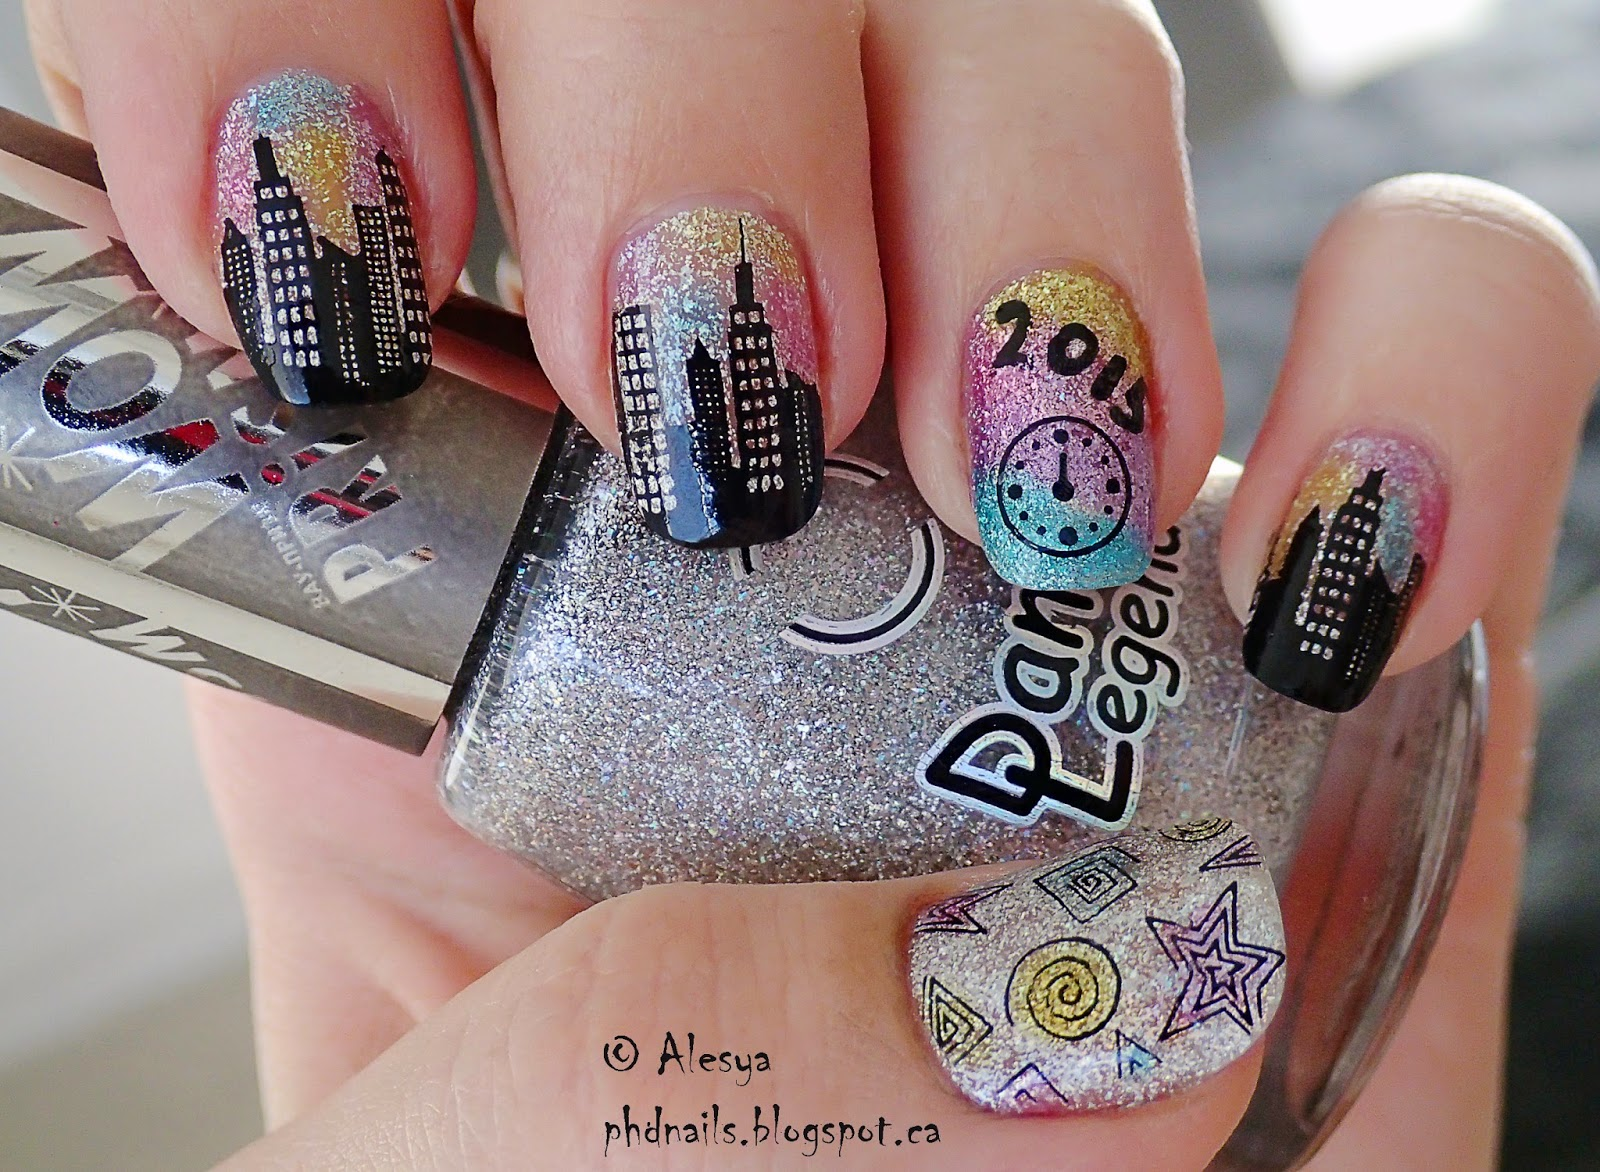 Phd nails winter nail art challenge new years eve winter nail art challenge new years eve prinsesfo Images